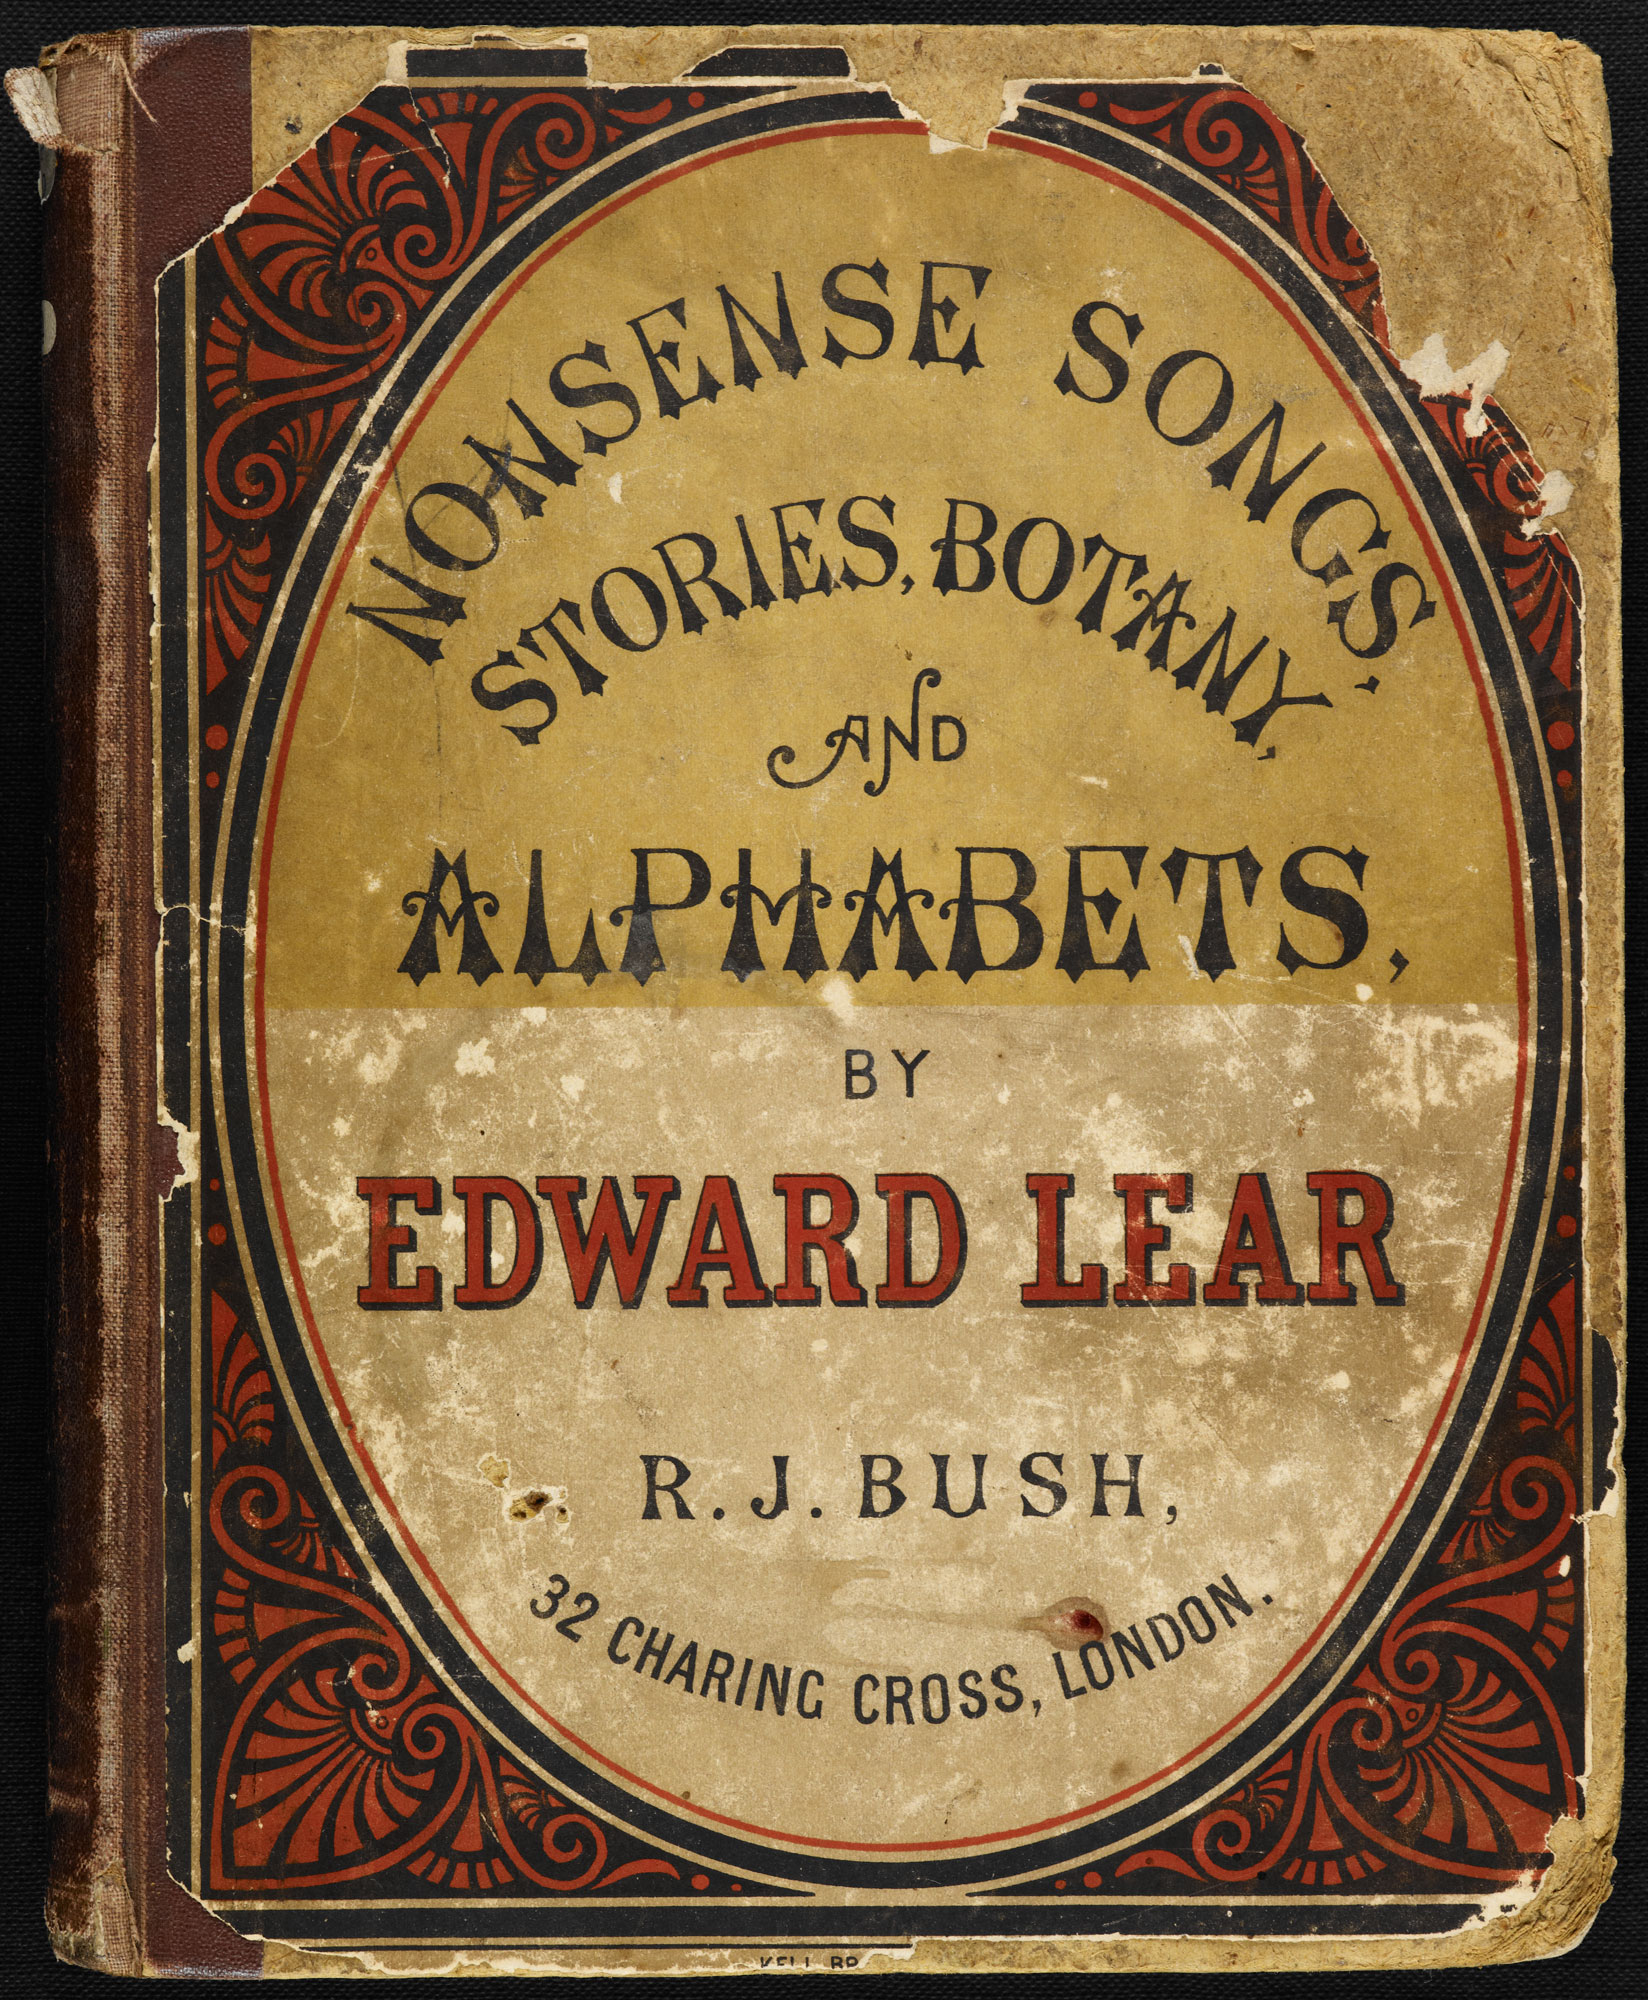 Nonsense Songs, Stories, Botany, and Alphabets by Edward Lear [page: front cover]